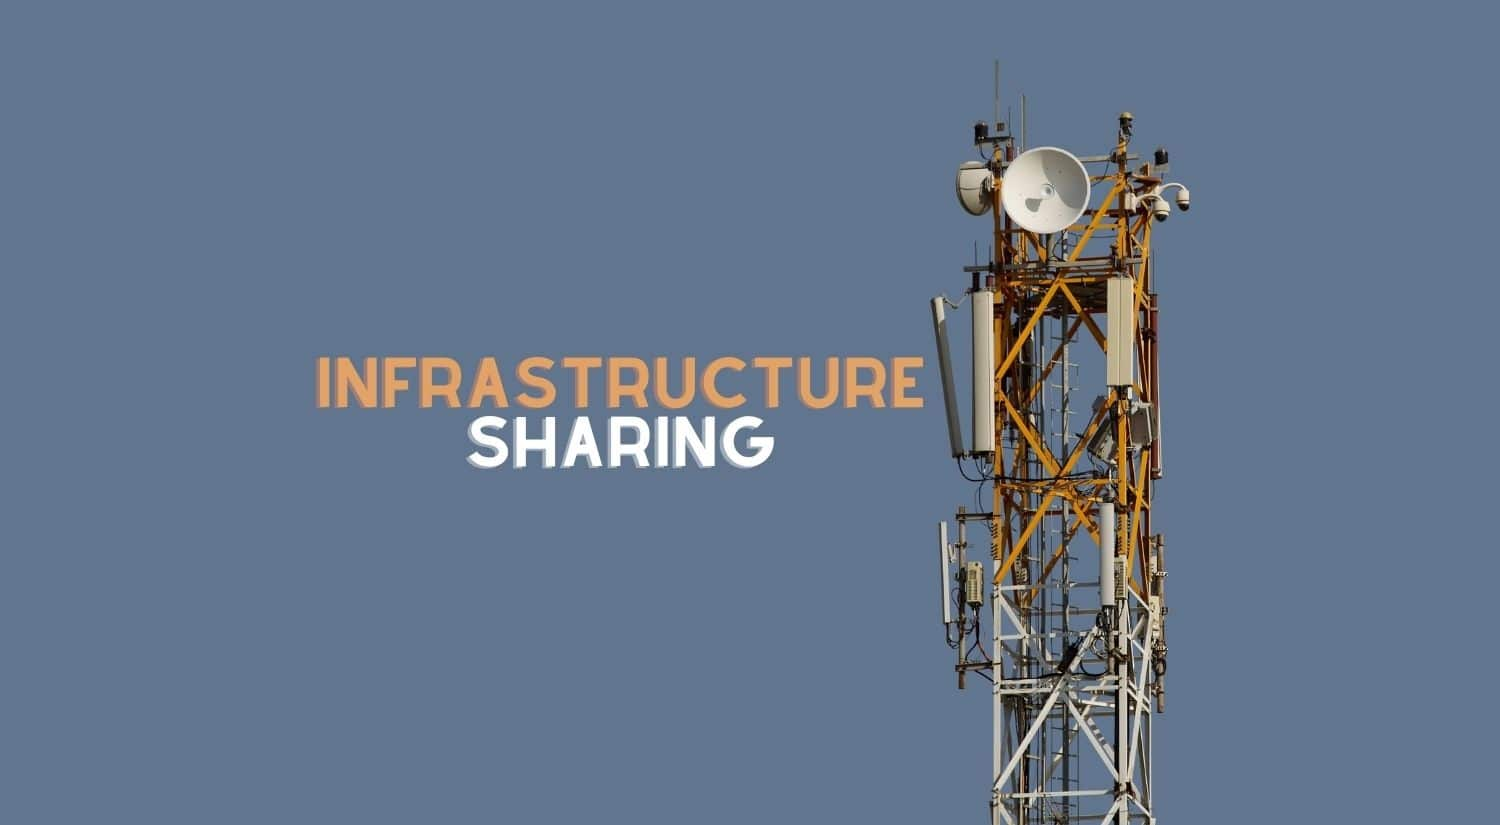 Infrastructure Sharing